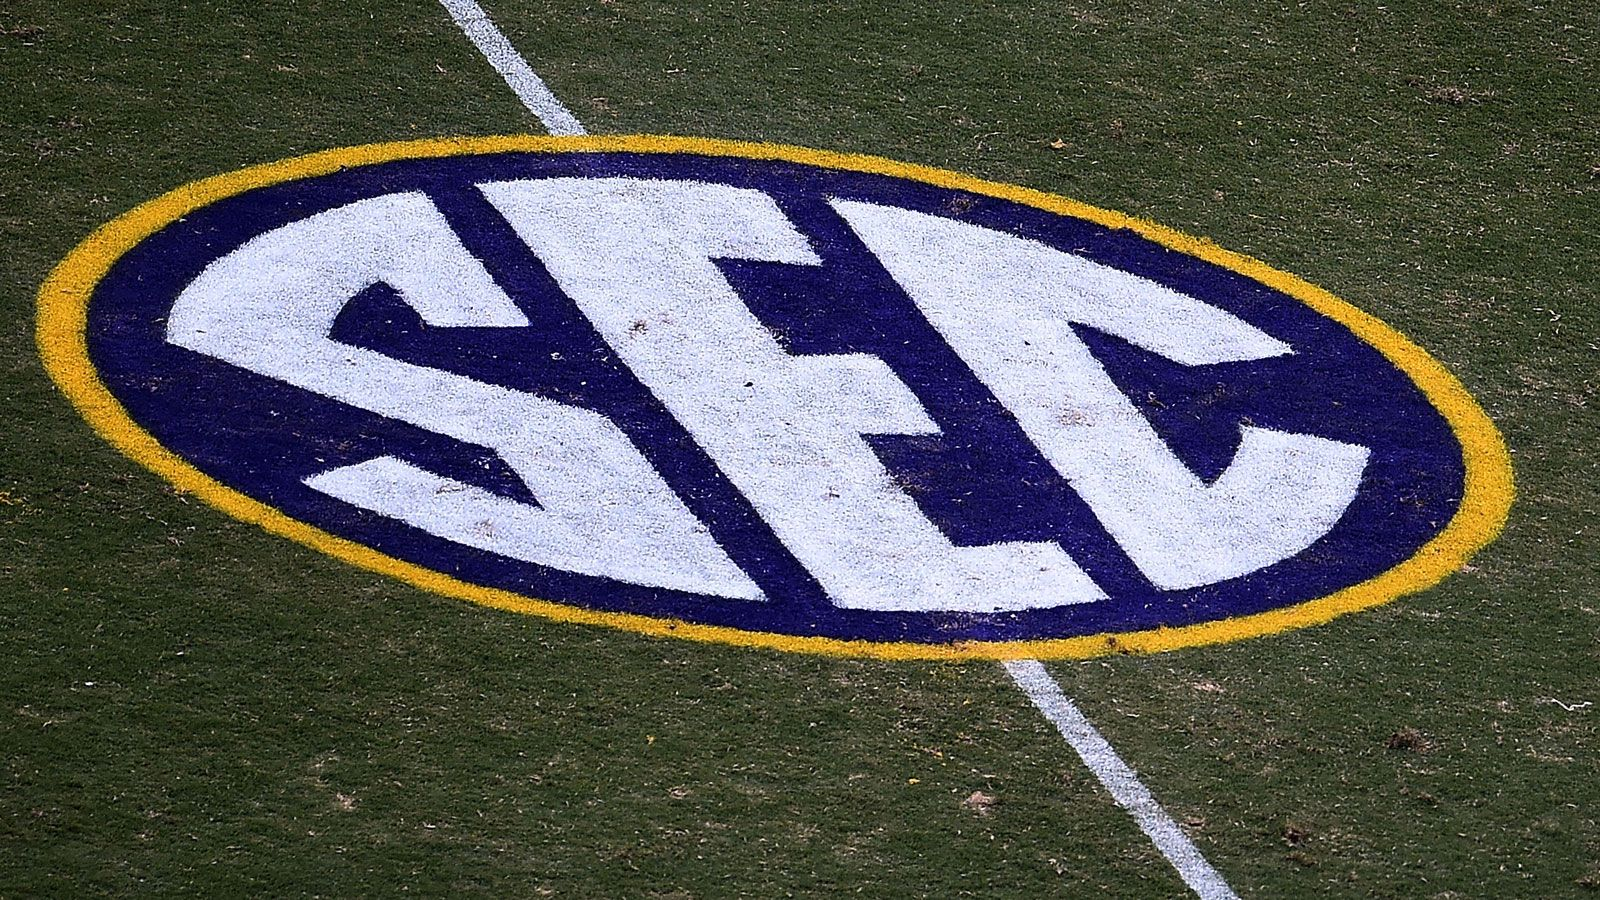 SEC announces new preseason football practice schedule